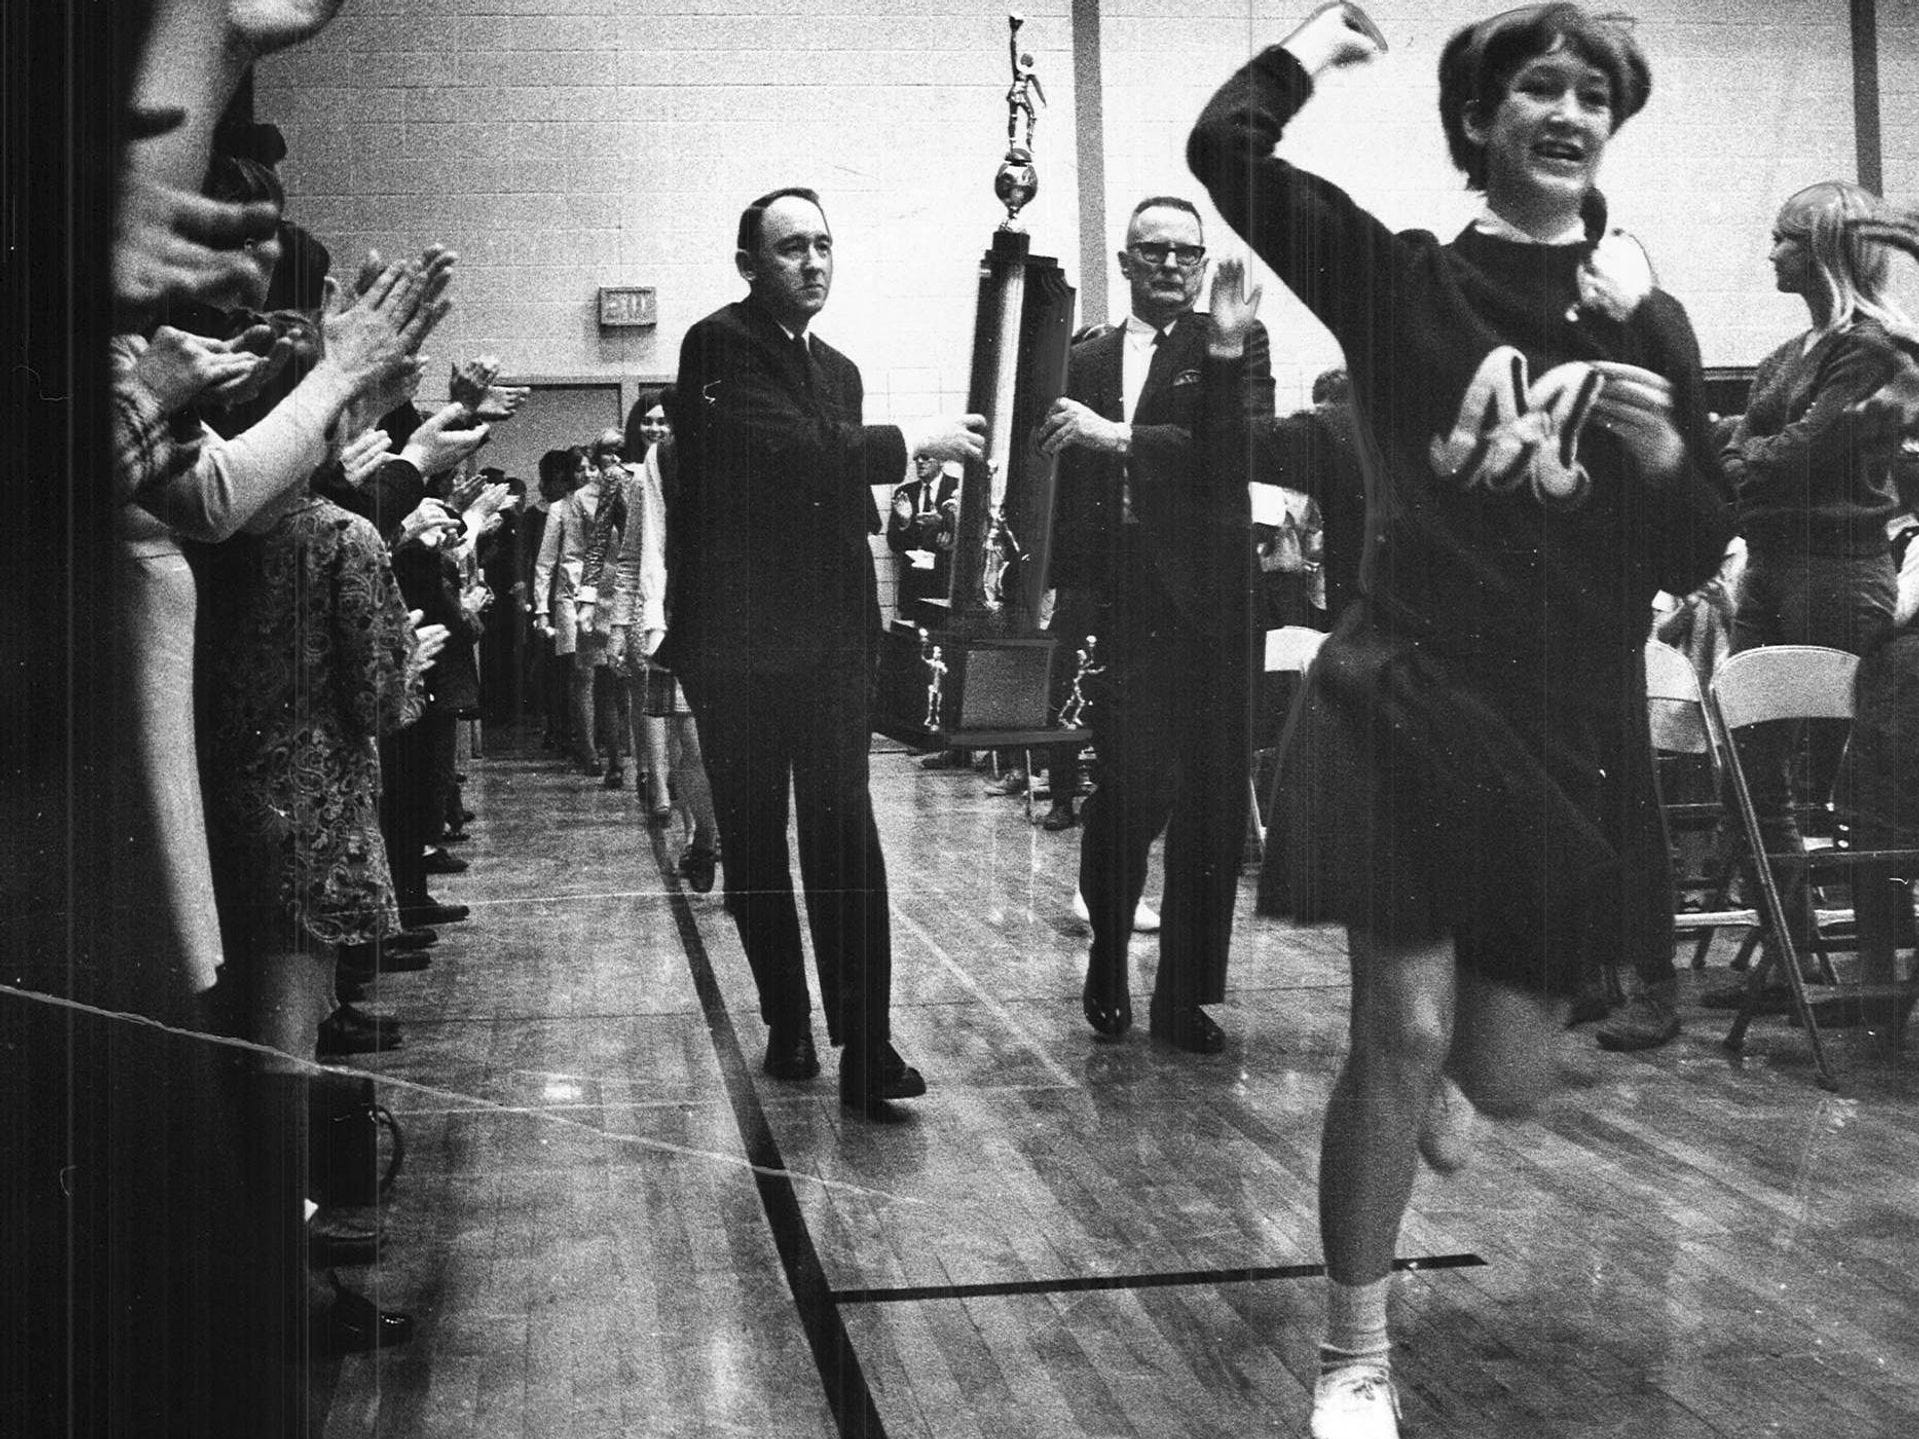 1969: Close to 2,500 fans packed the Montezuma High School gymnasium in March 1969 to celebrate the school's first state girls' basketball tournament championship. The Saturday night title game that saw Montezuma beat Allison-Bristow 66-60 was followed by a caravan that picked up hundreds of cars on its way from Des Moines to Poweshiek County. Register file photo